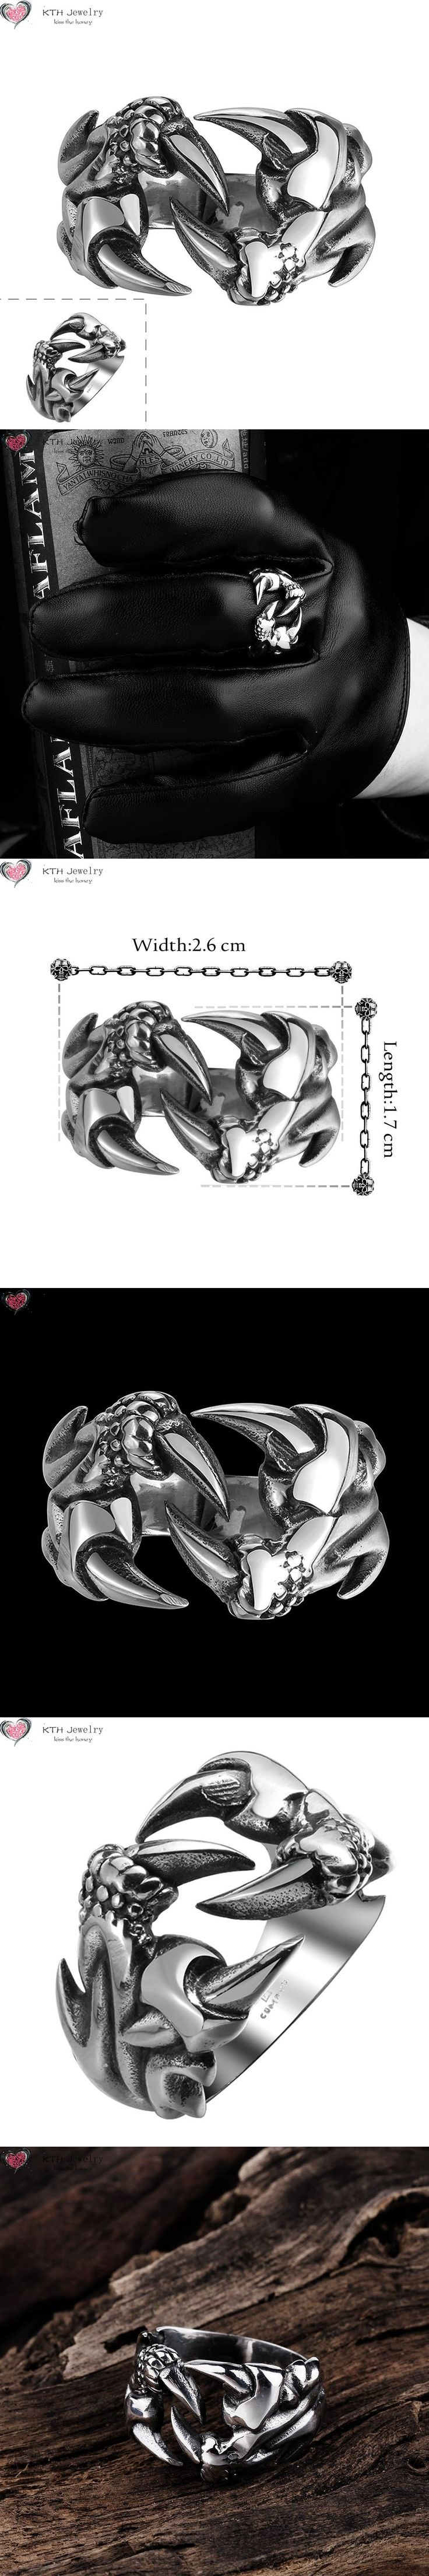 GMYR114 New Desigh Retro Dragon Talons Punk Ring 316L Stainless Steel Titanium Easter Halloween Jewelry